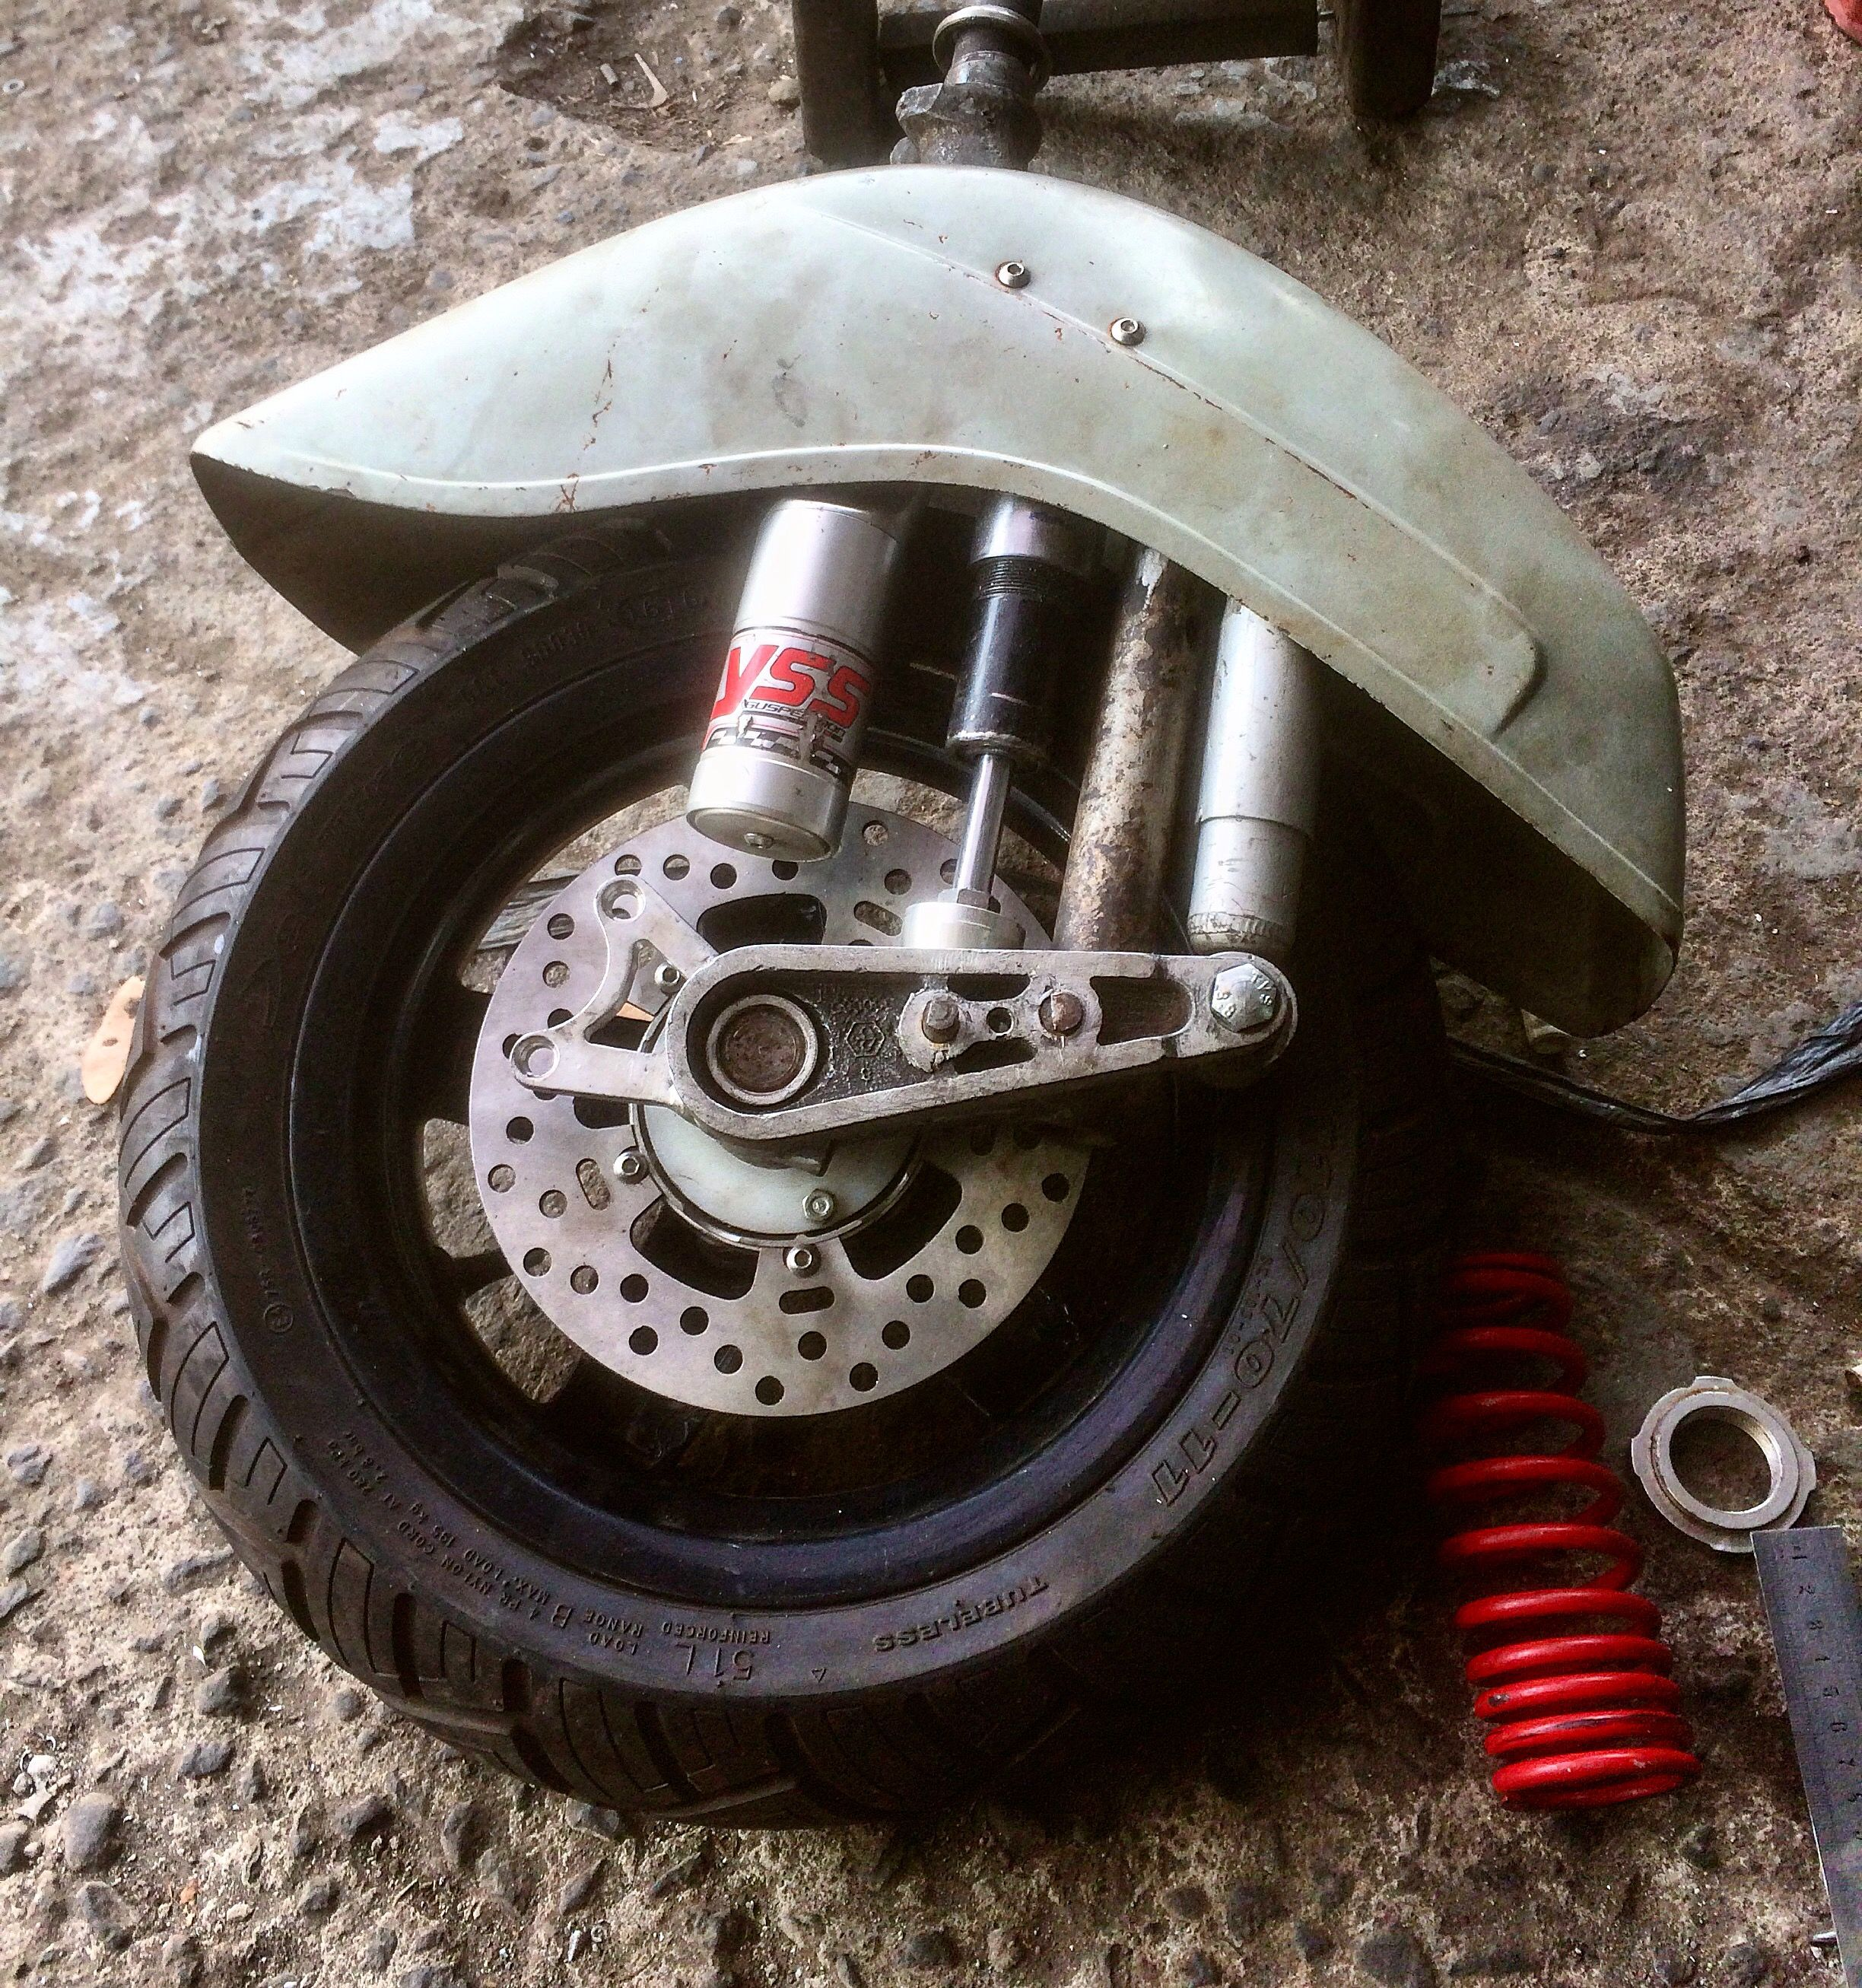 vespa custom front suspension .. 3 point linkage with yss sub tank shock breaker